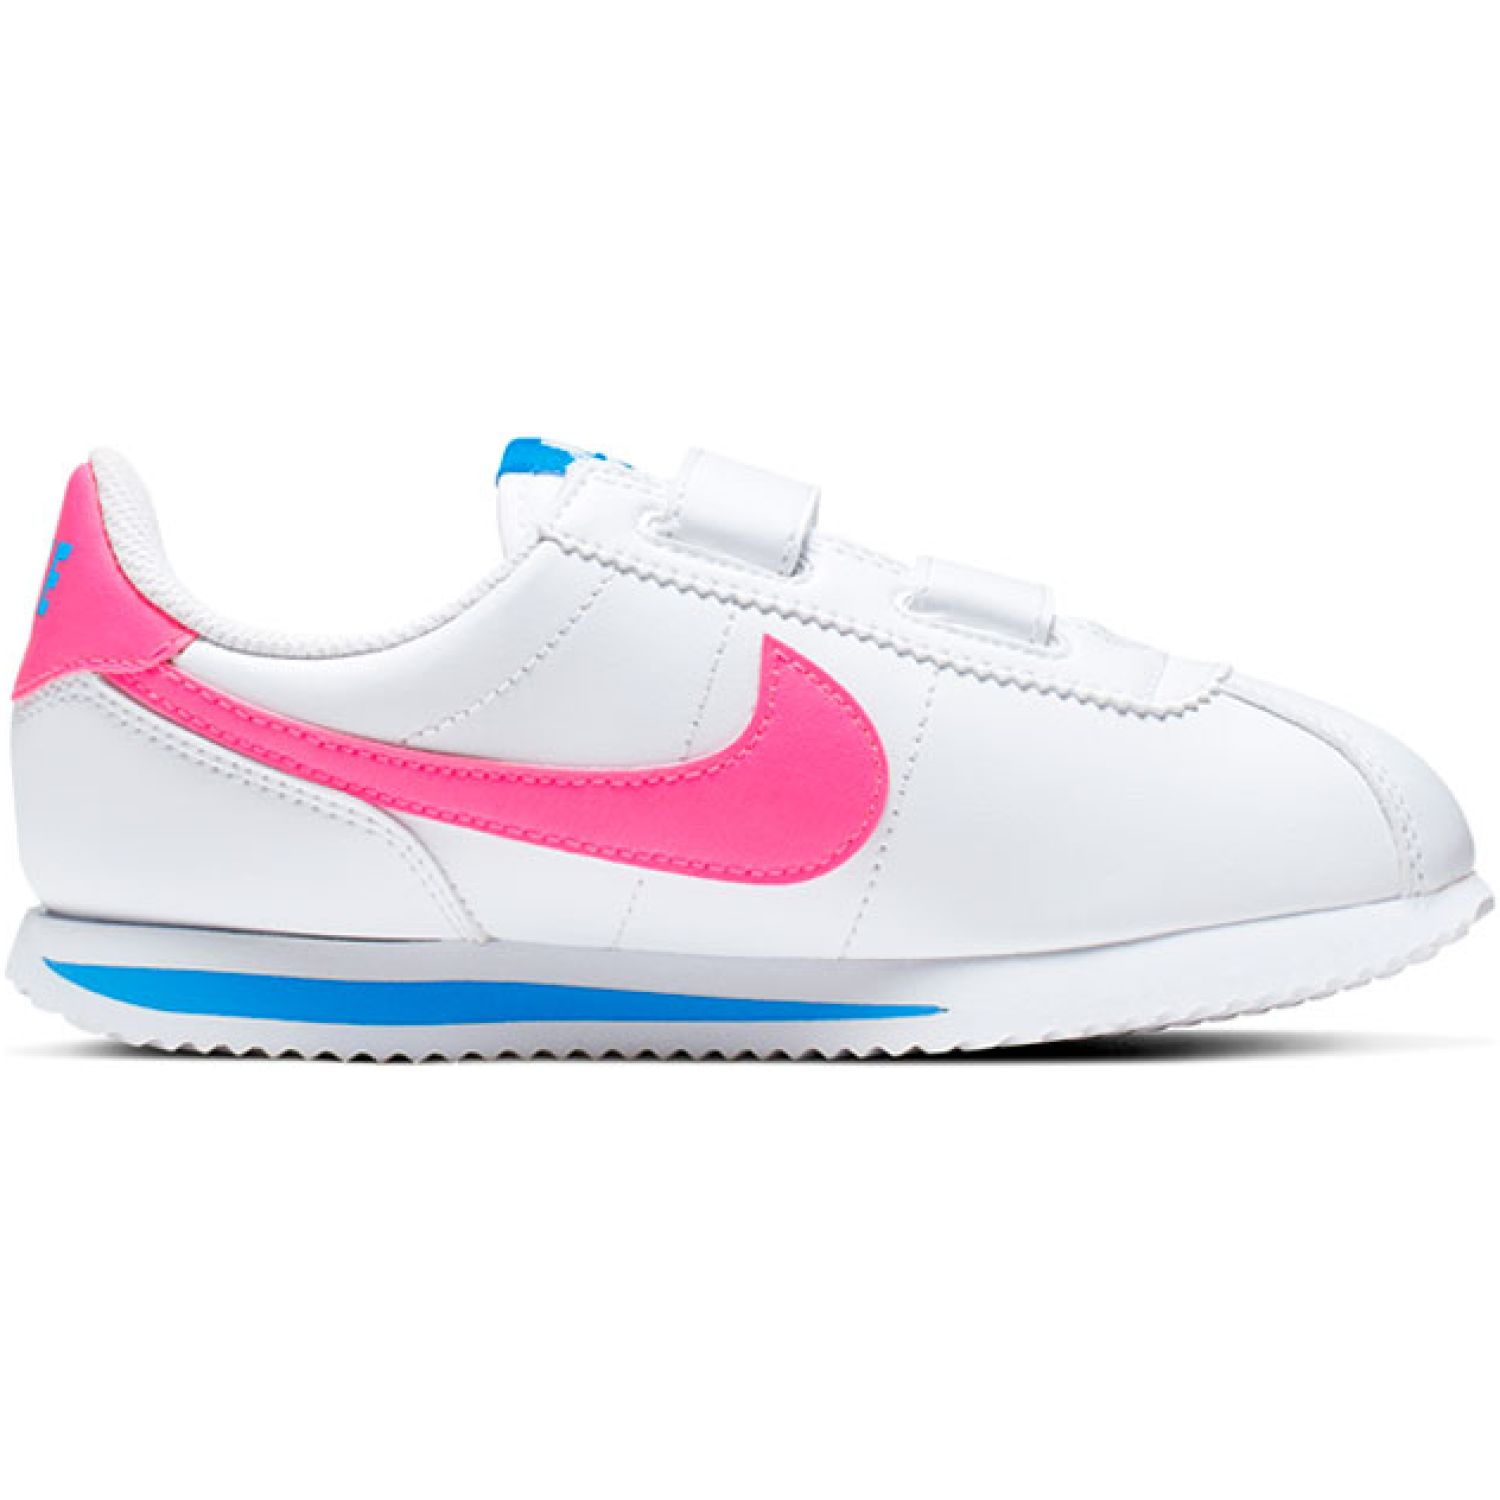 Nike cortez basic sl bpv Blanco / fucsia Walking